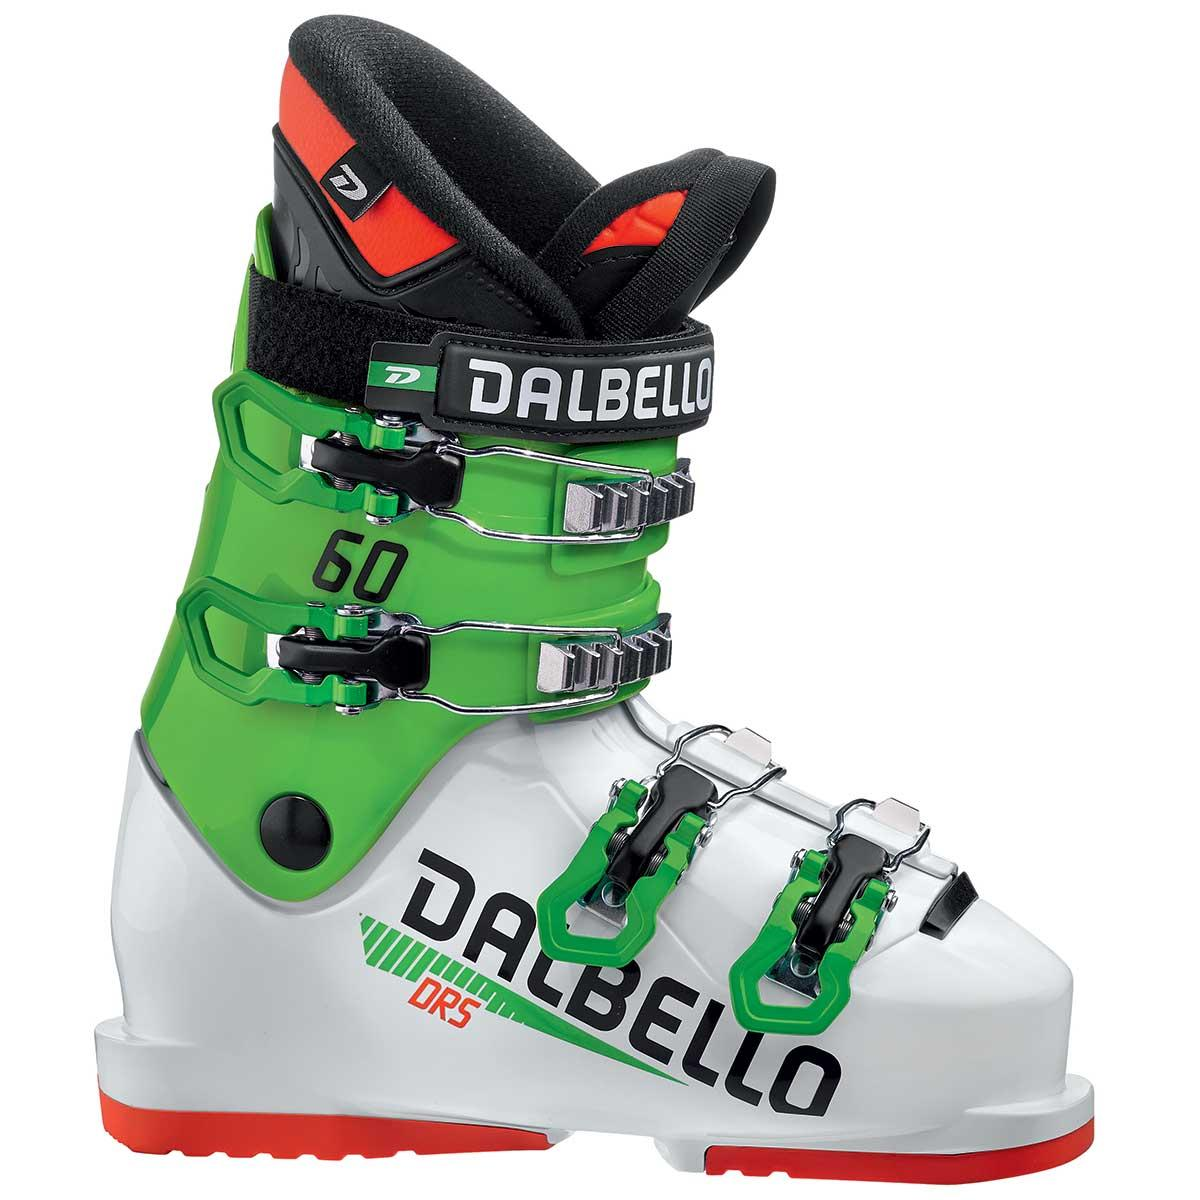 Dalbello DRS 60 junior race ski boot in white and race green